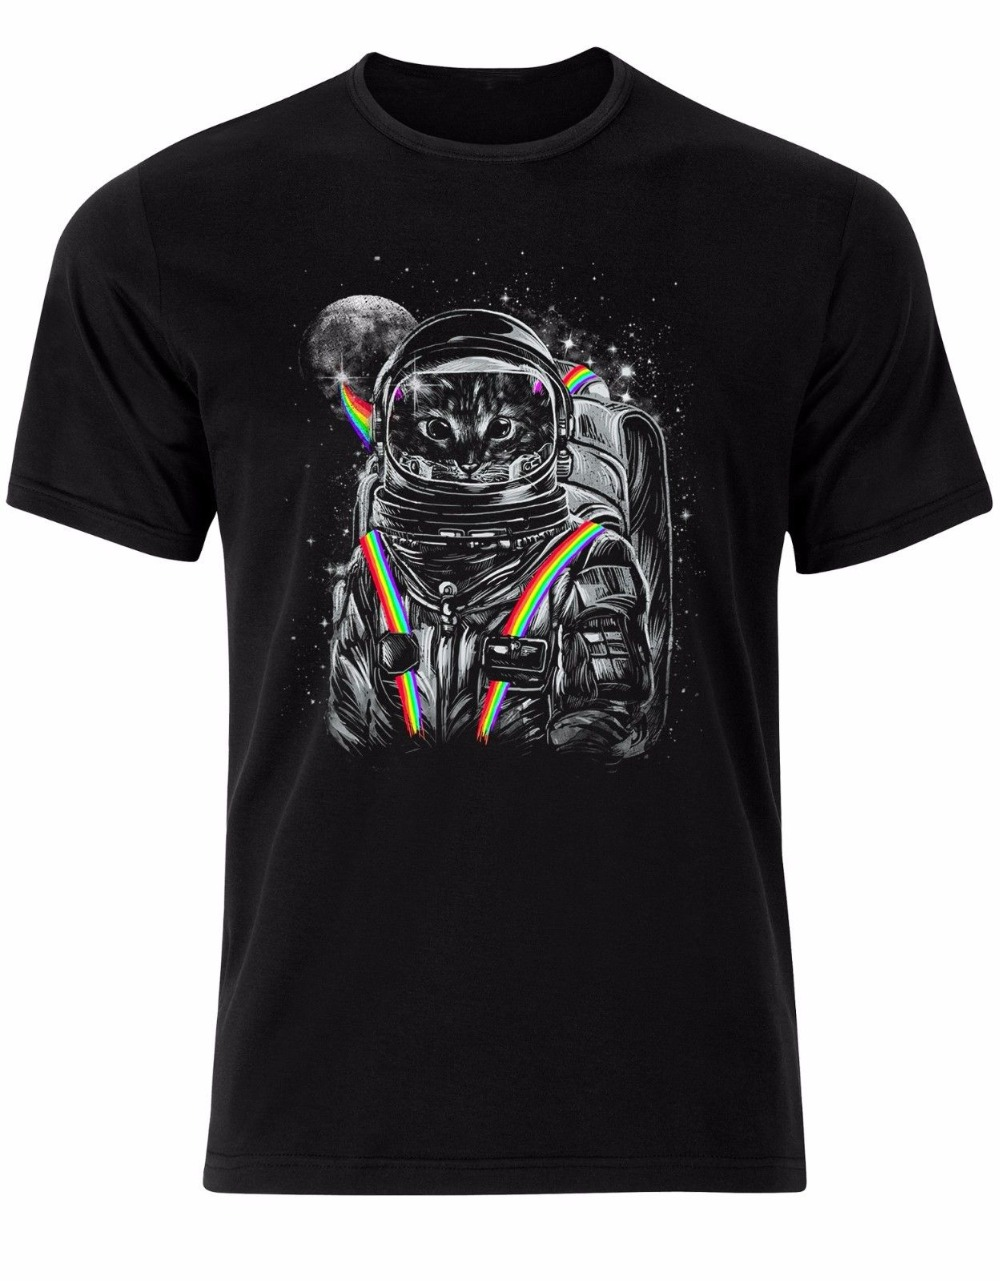 T Shirt Animea Cat In The Space Astronaut Colours Rainbow Moon Kitty Meow Men Tshirt Top Al87 New Brand Casual Clothing